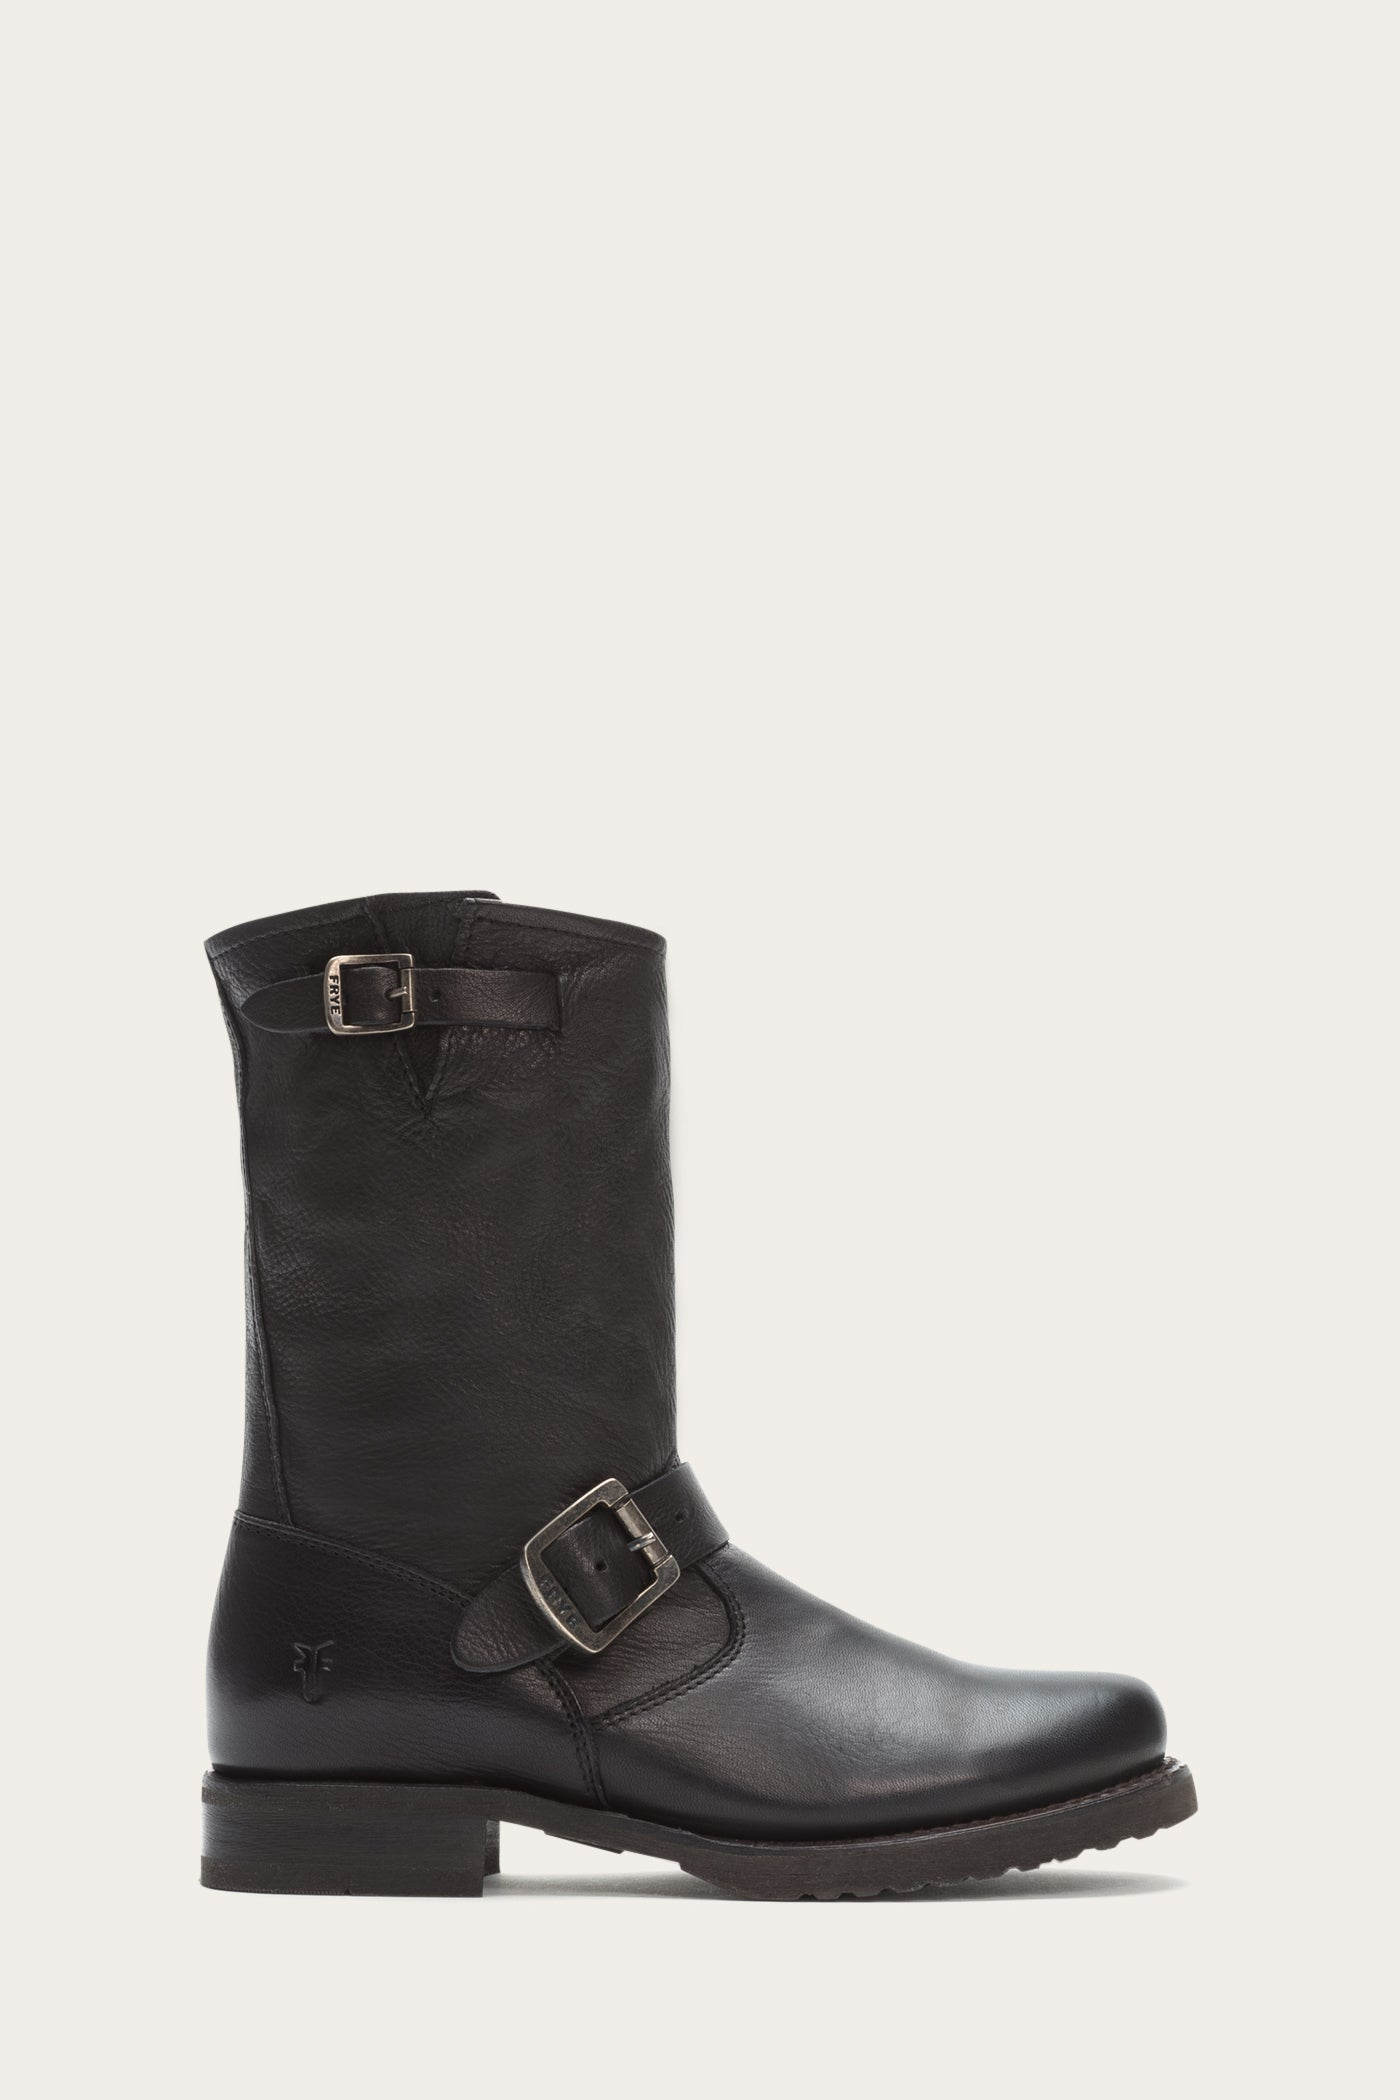 FRYE Boots, Sneakers, Shoes for Men and